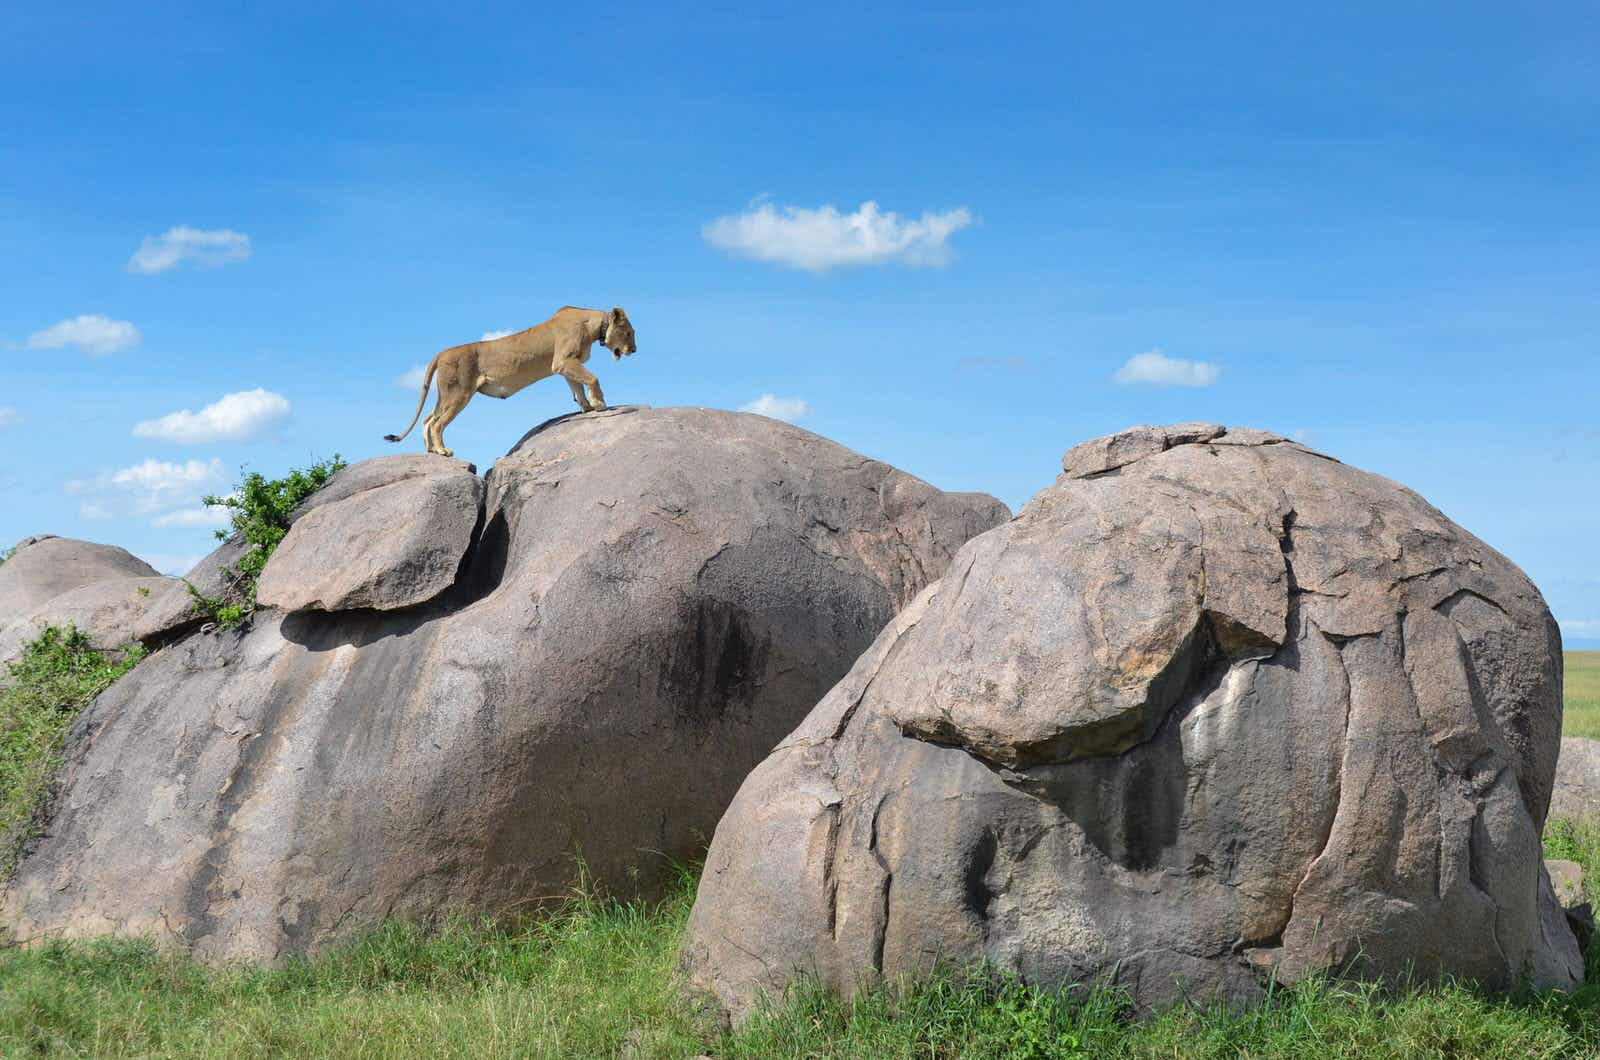 A female lion standing on top of a large boulder in the Serengeti National Park © roevin / Getty Images